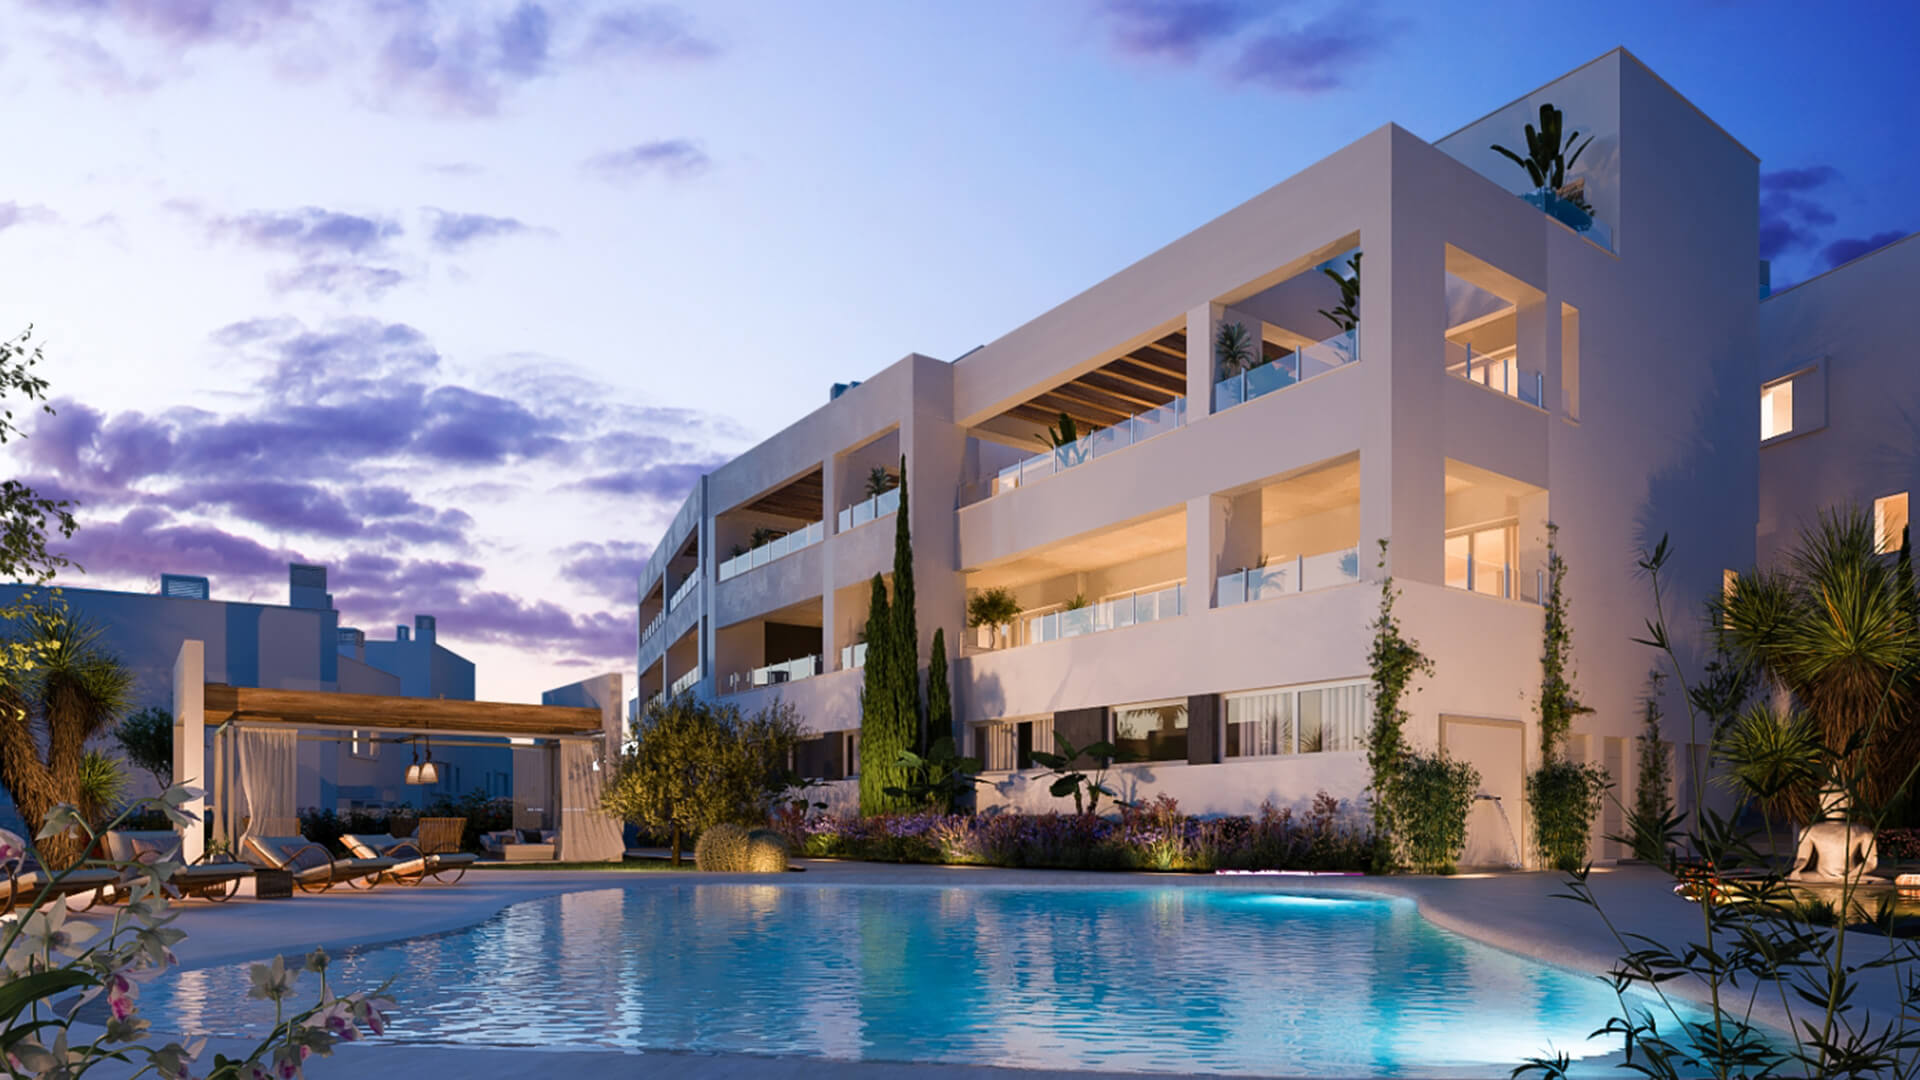 Los Monteros Apartments